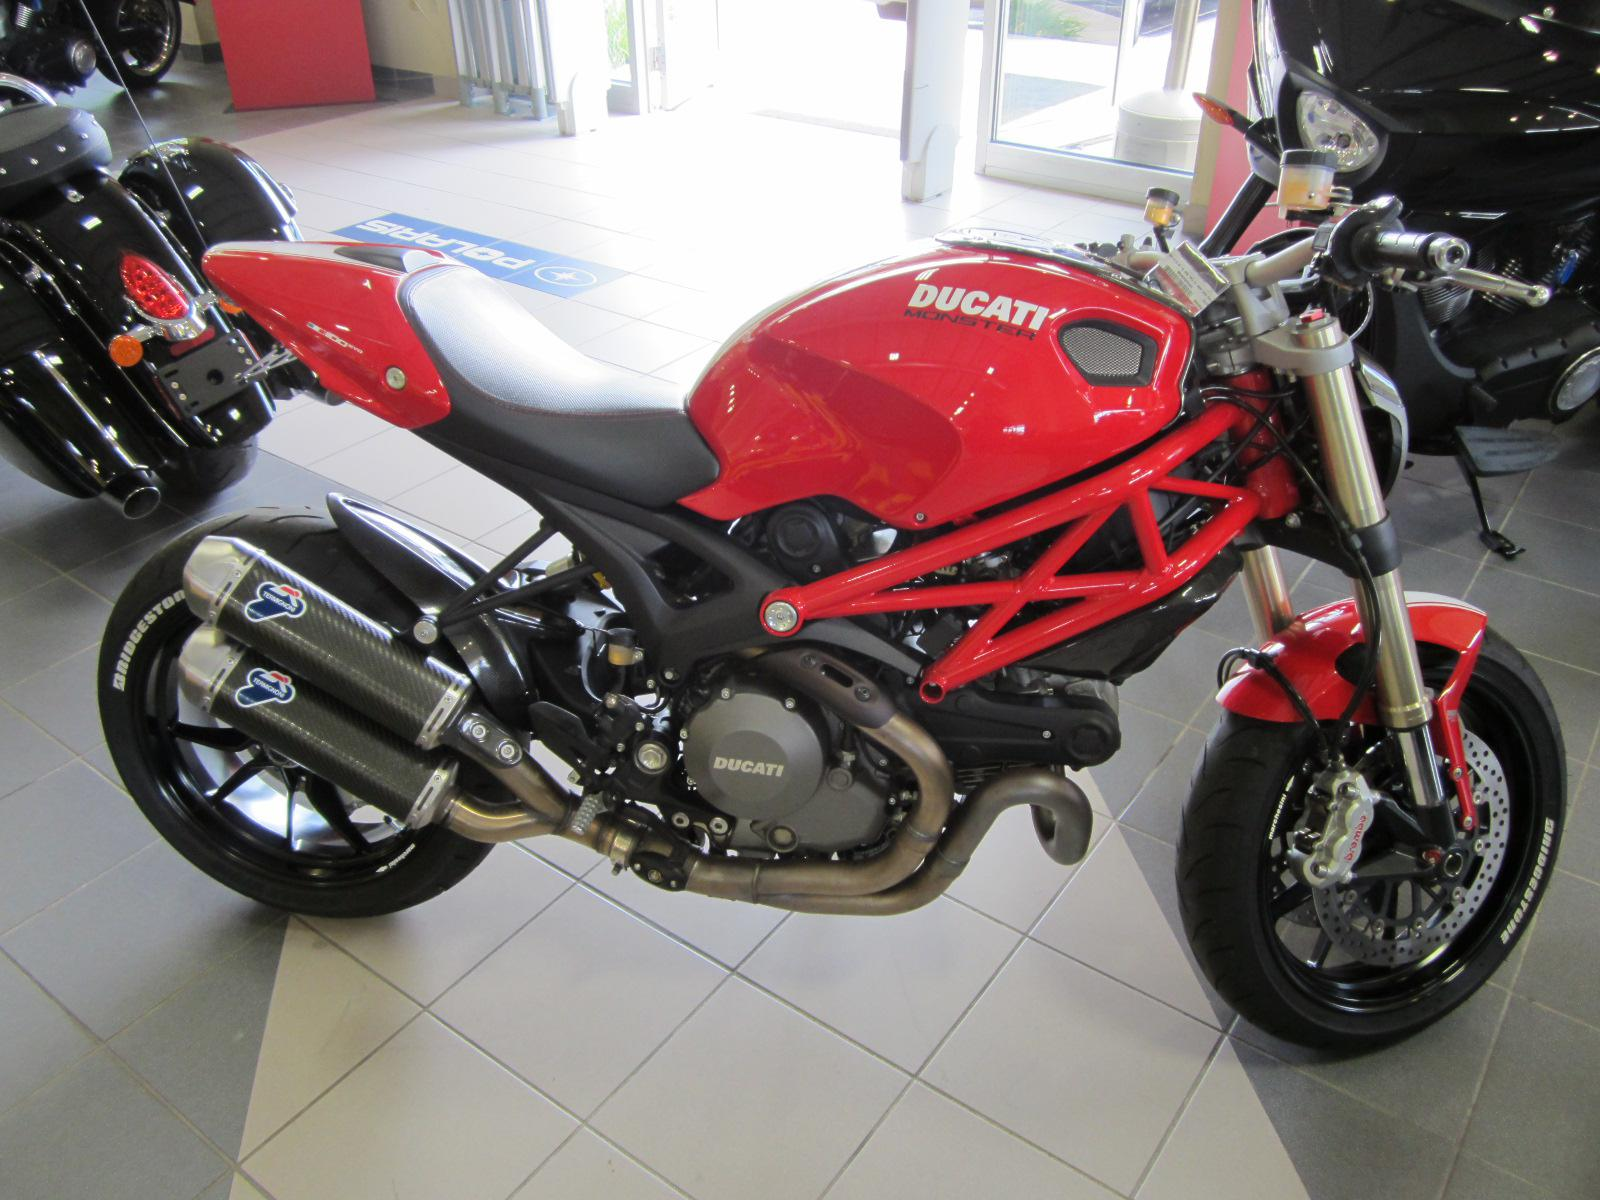 2012 Ducati MONSTER 1100, motorcycle listing